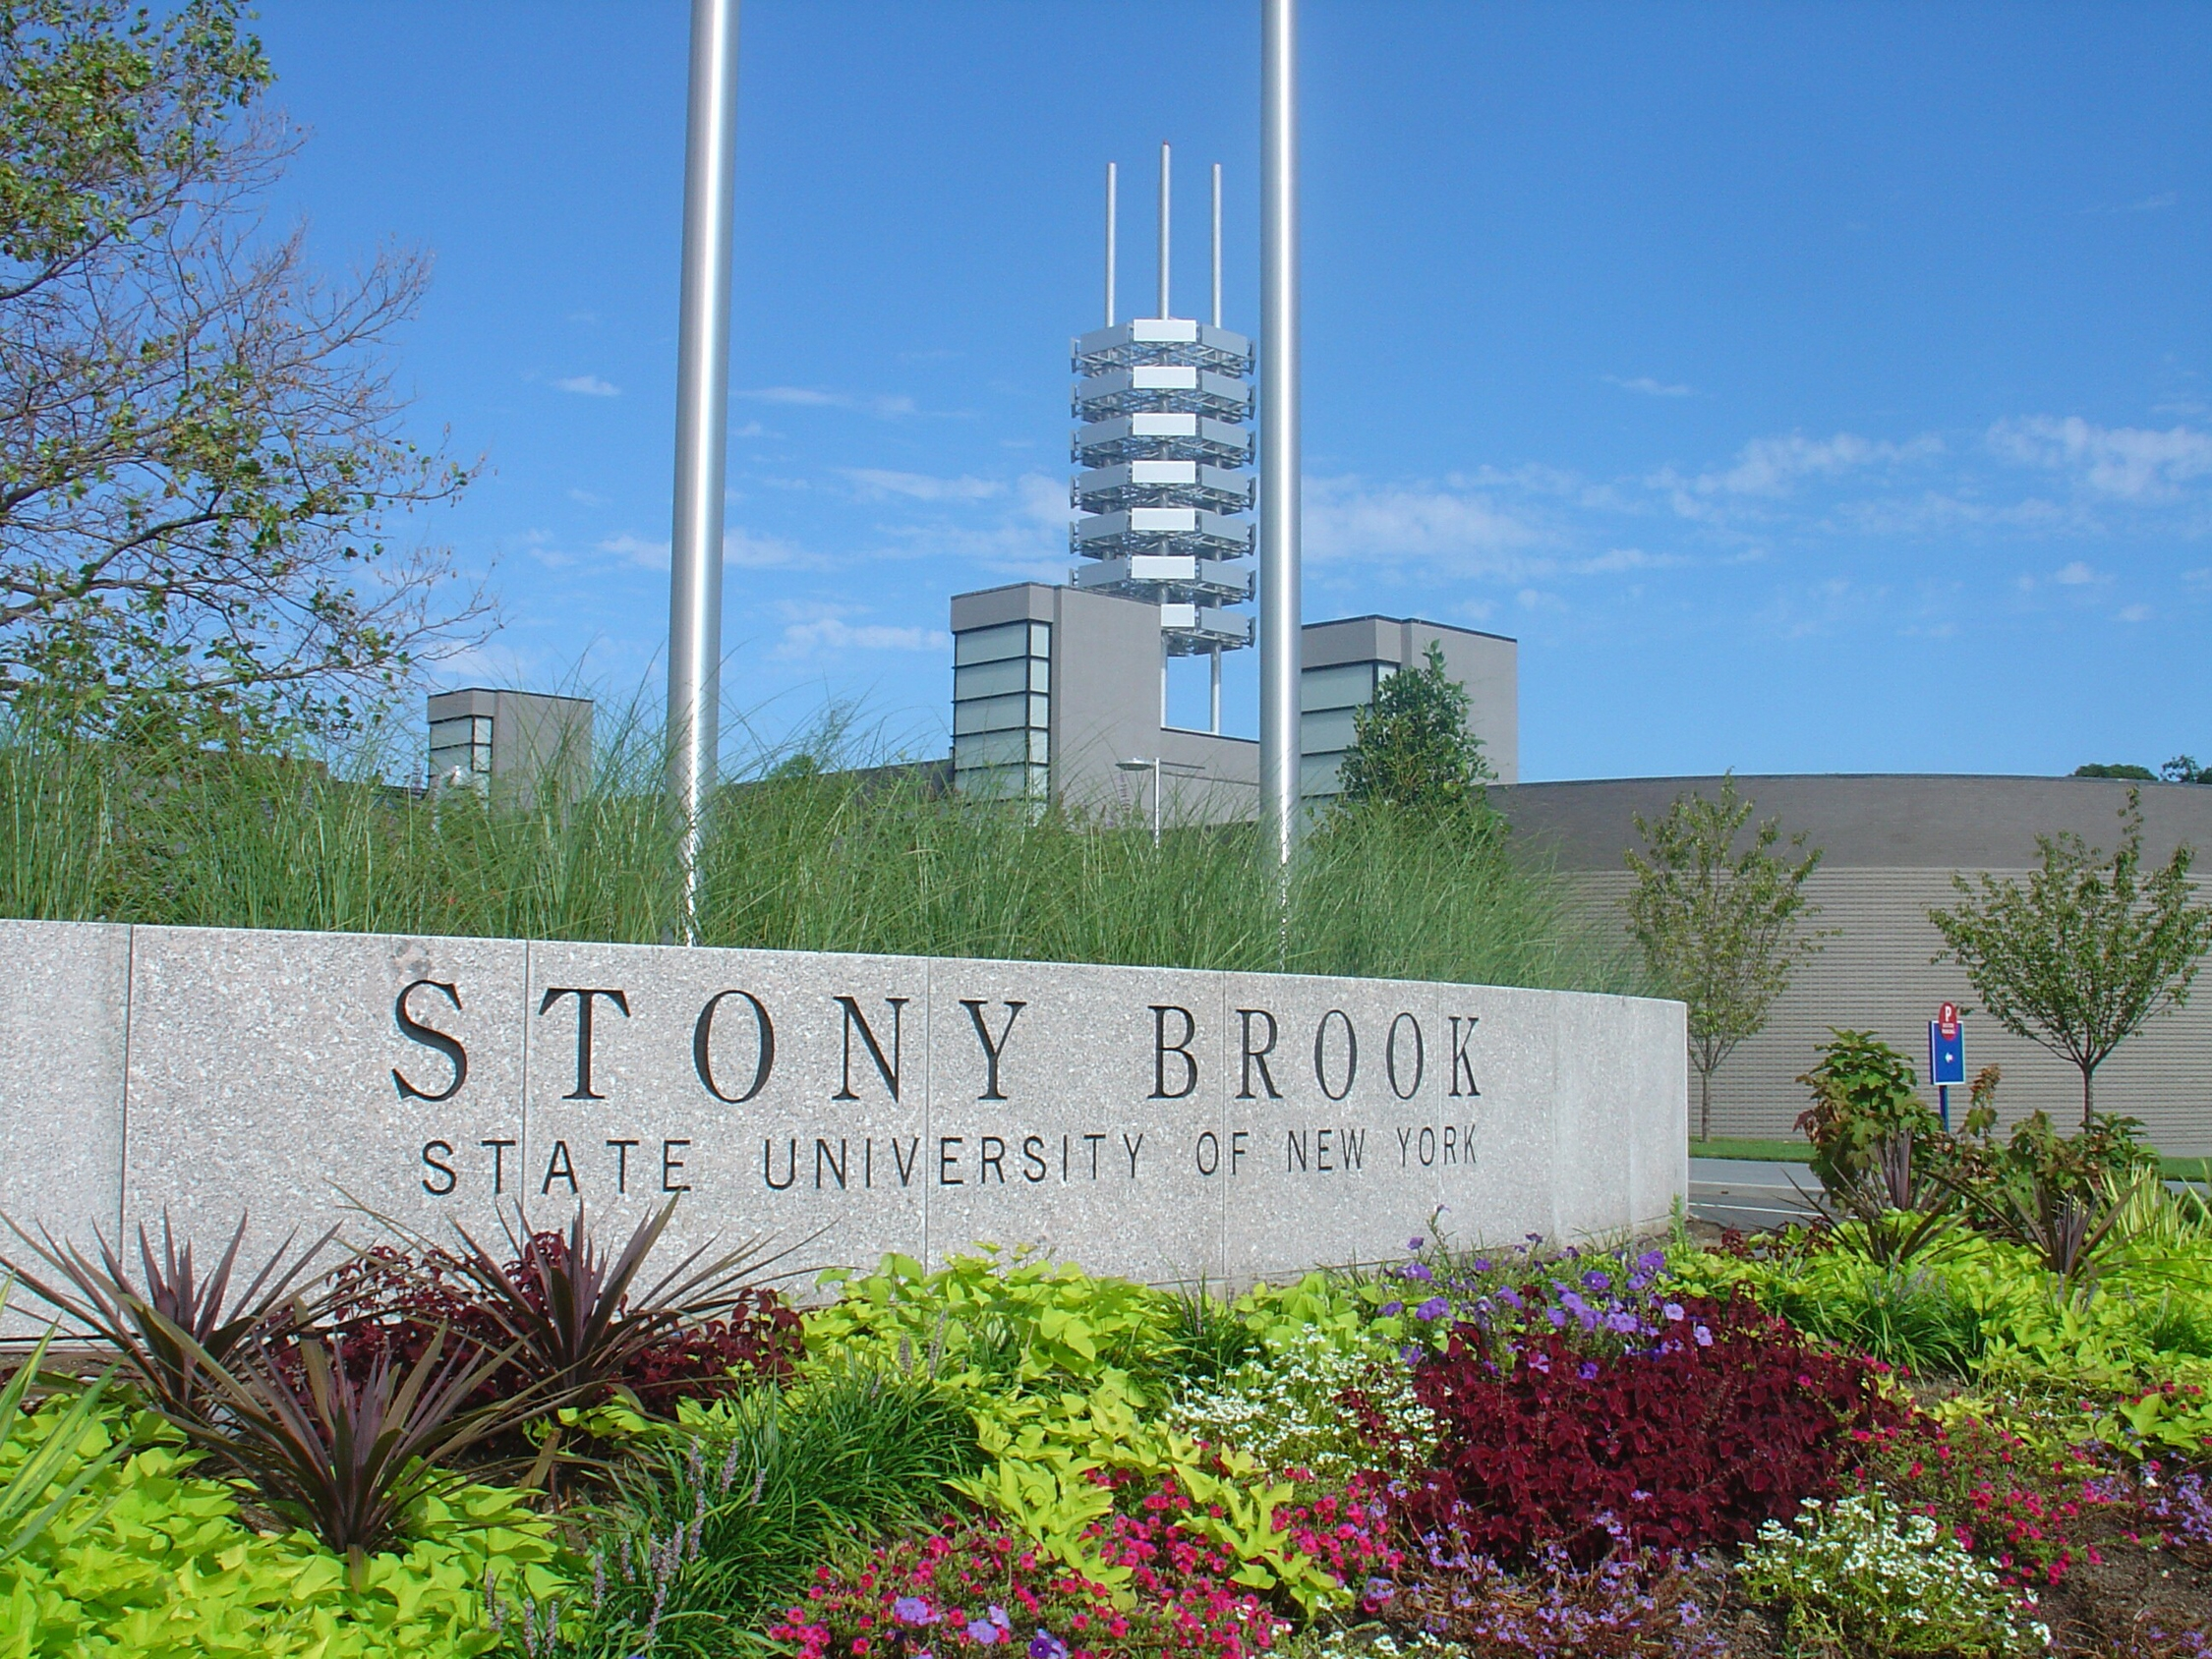 Stony brook university 1